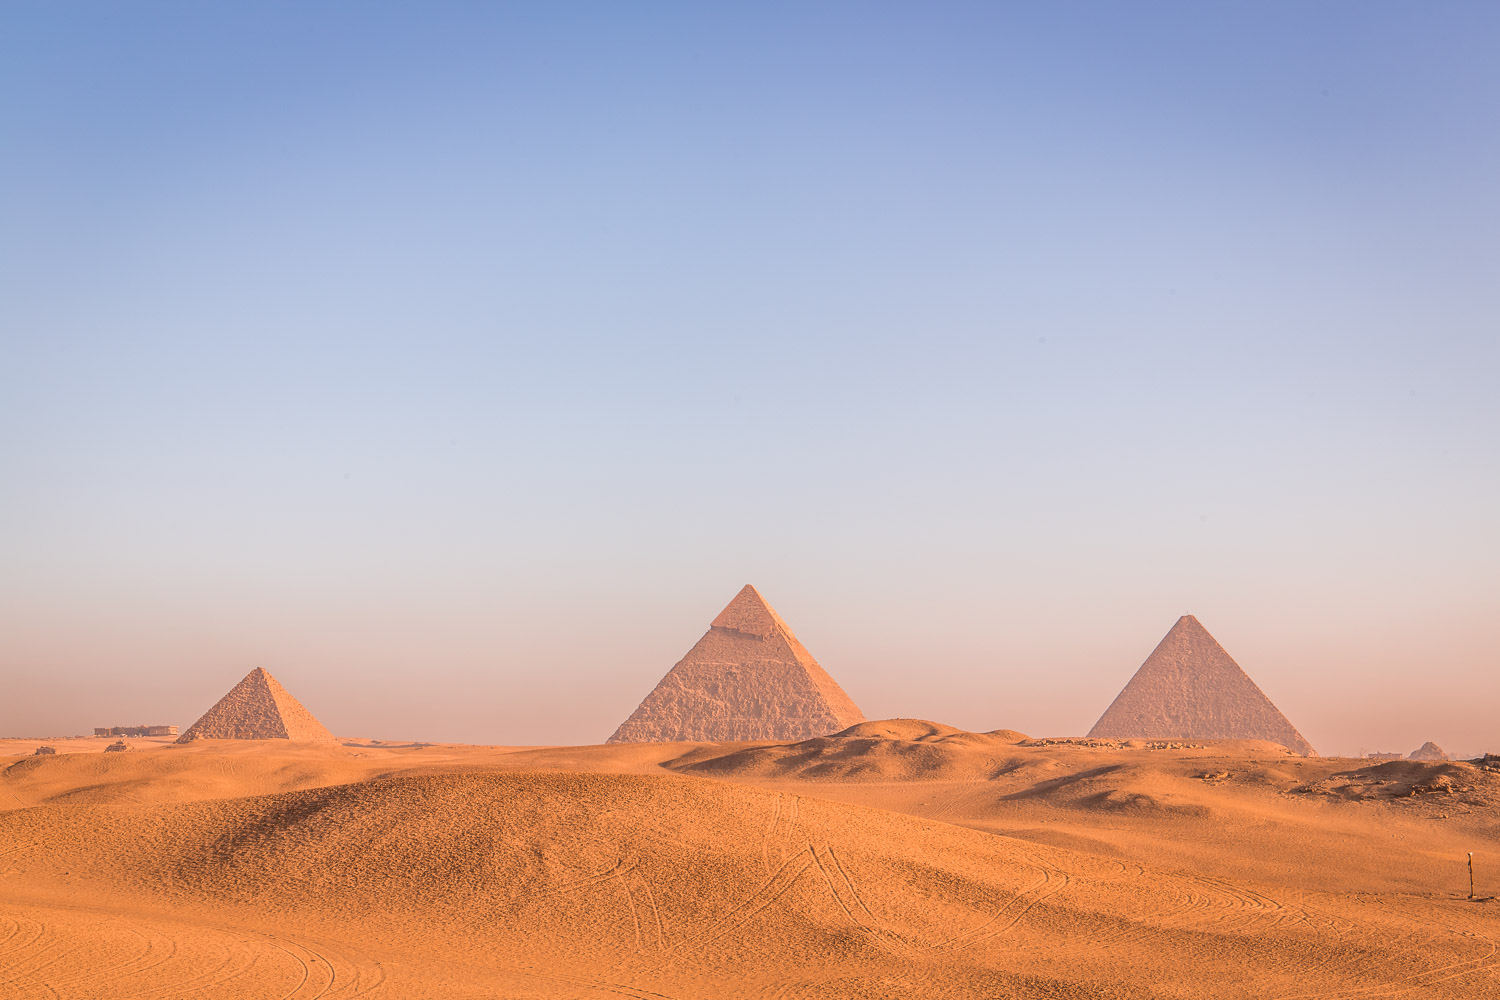 When I look at the pyramids, I feel that they exist in the past, present and future simultaneously.